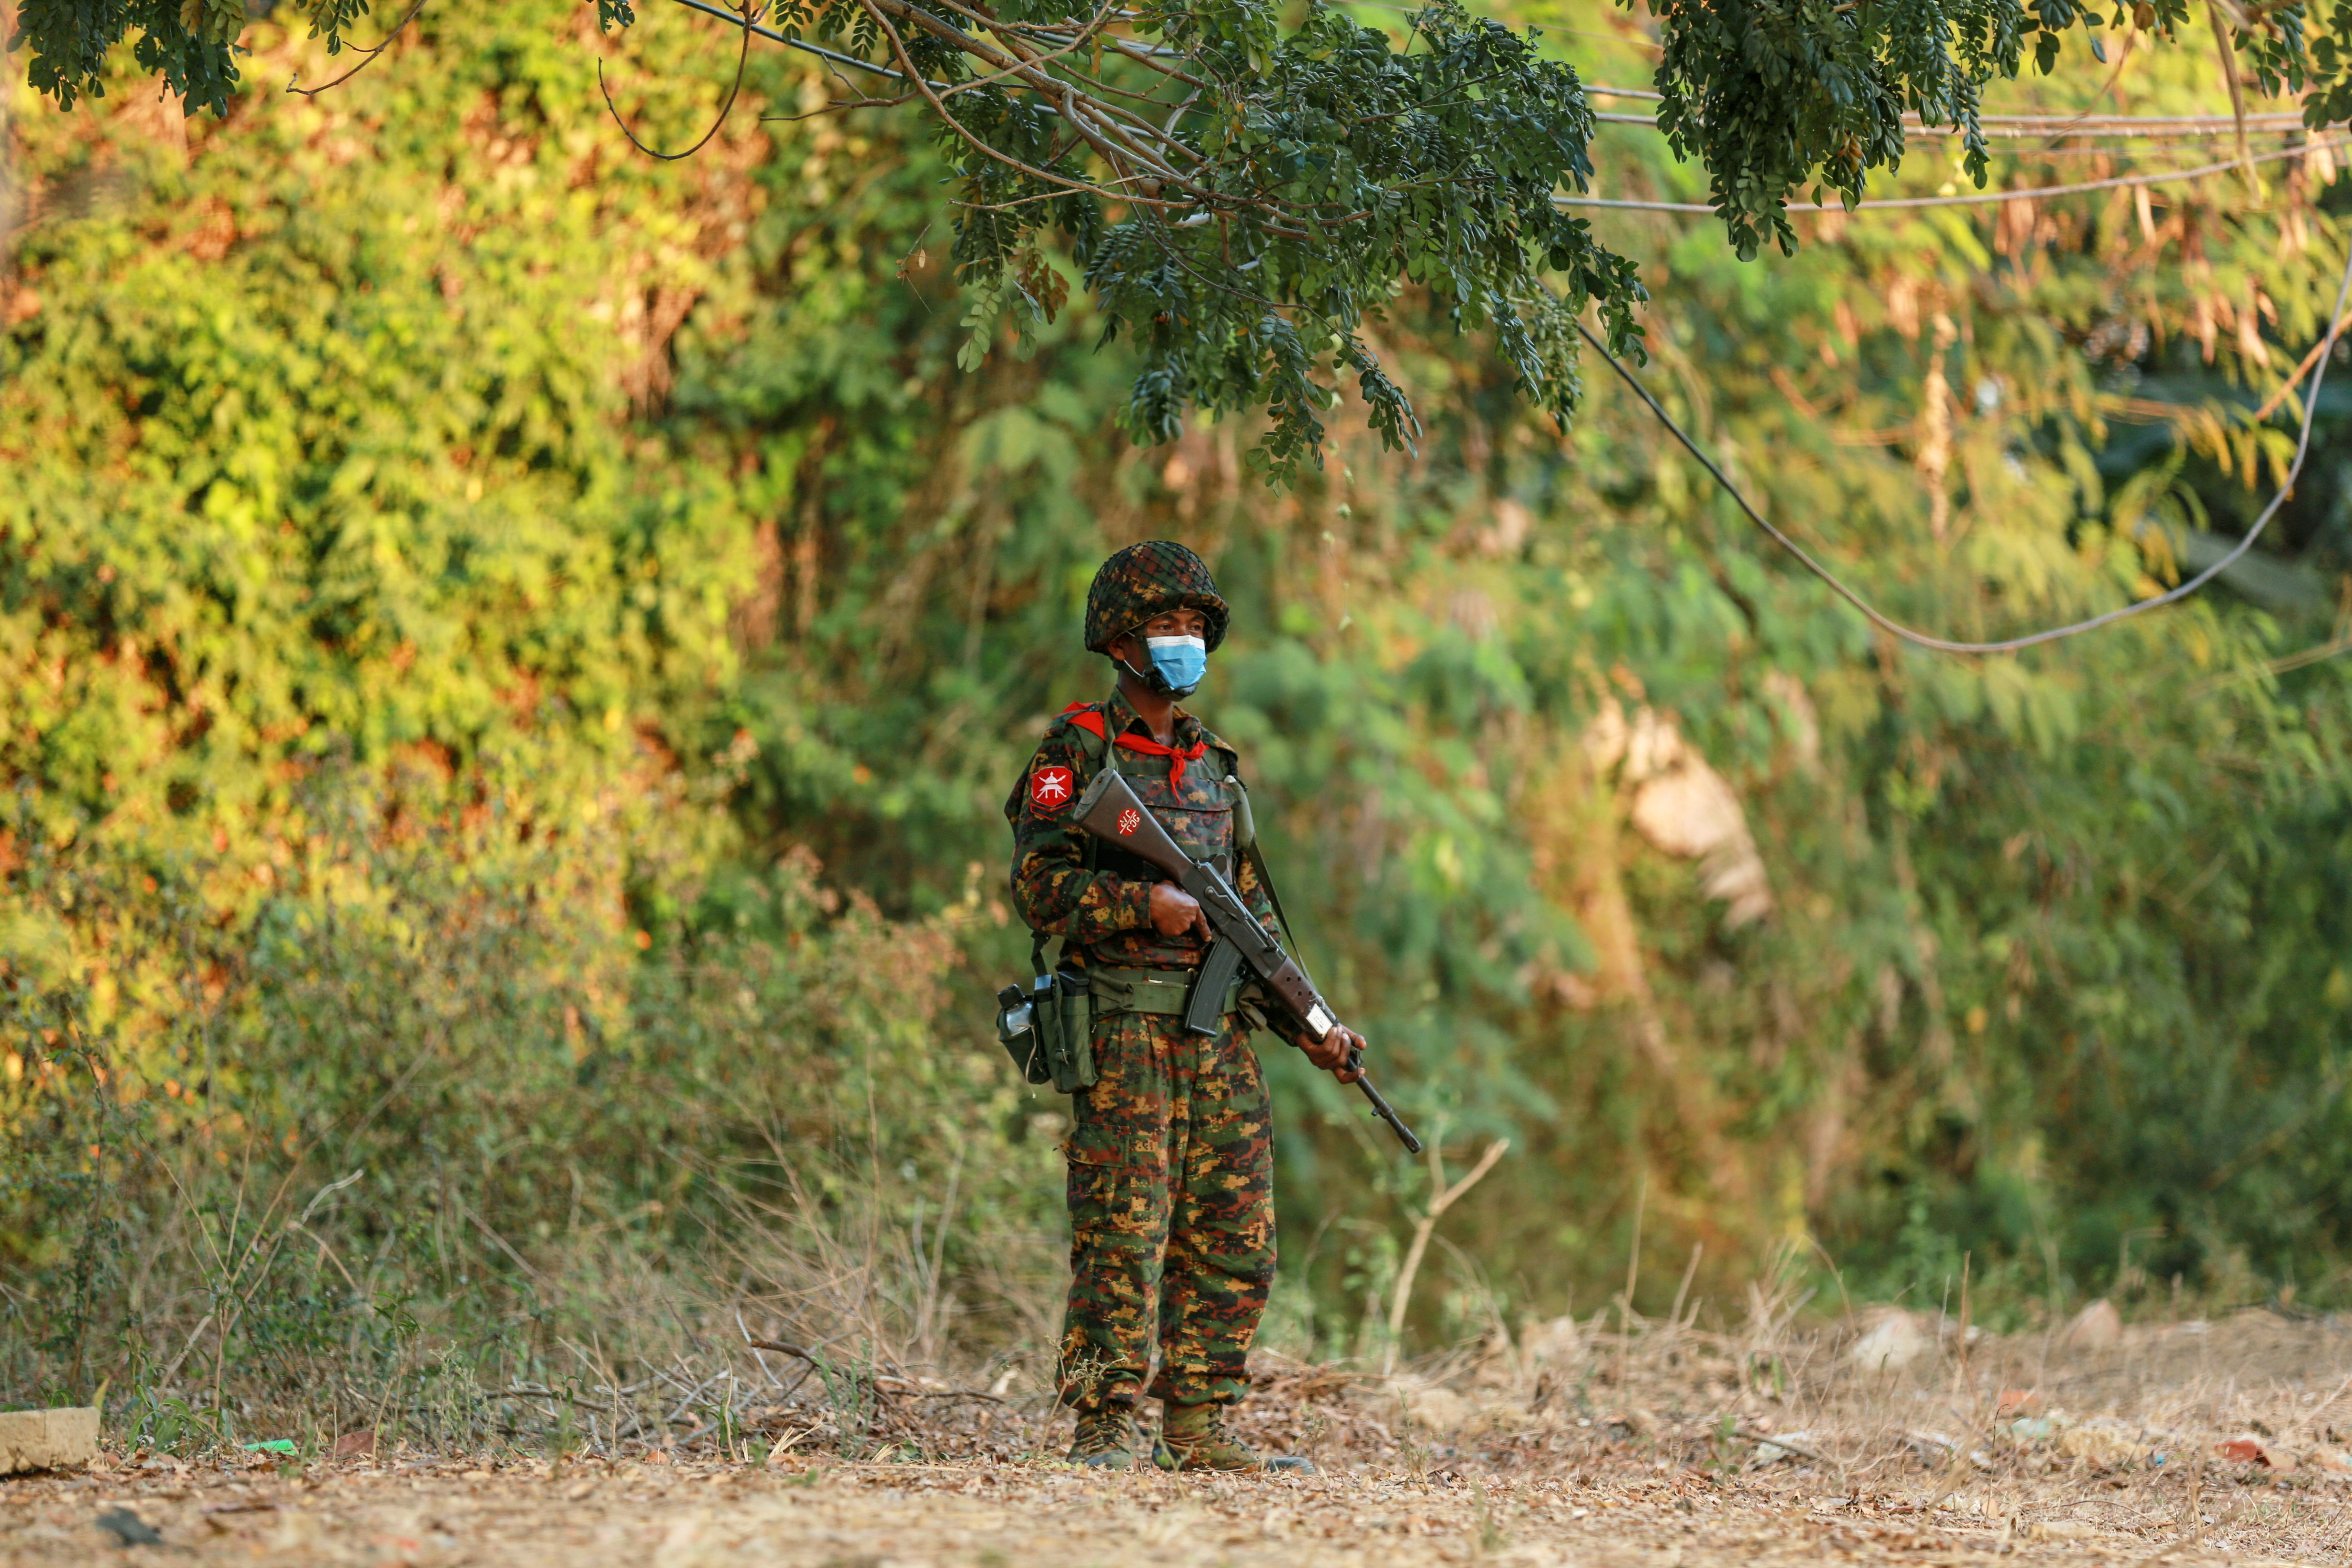 A Myanmar's soldier stands guard near the congress compound in Naypyitaw, Myanmar, February 2, 2021. REUTERS/Stringer